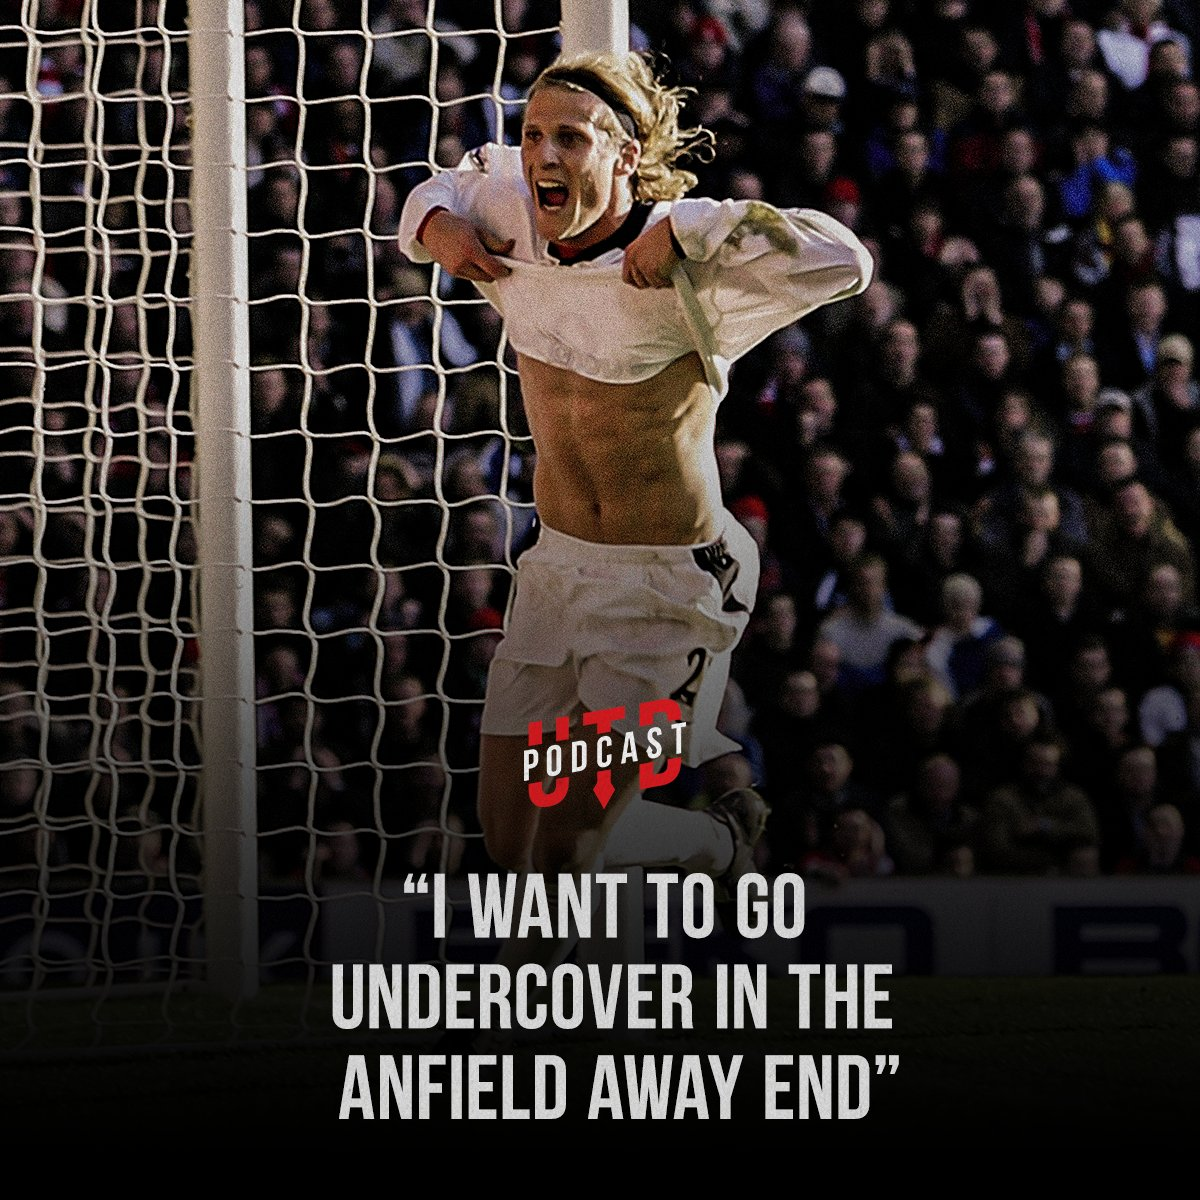 ☝️ His long-awaited first United goal ✌️ That wonder strike v Southampton  @DiegoForlan7 discusses those two moments, being an #MUFC cult hero and more in our latest UTD Podcast 🌟 https://t.co/gtVmolDxlF